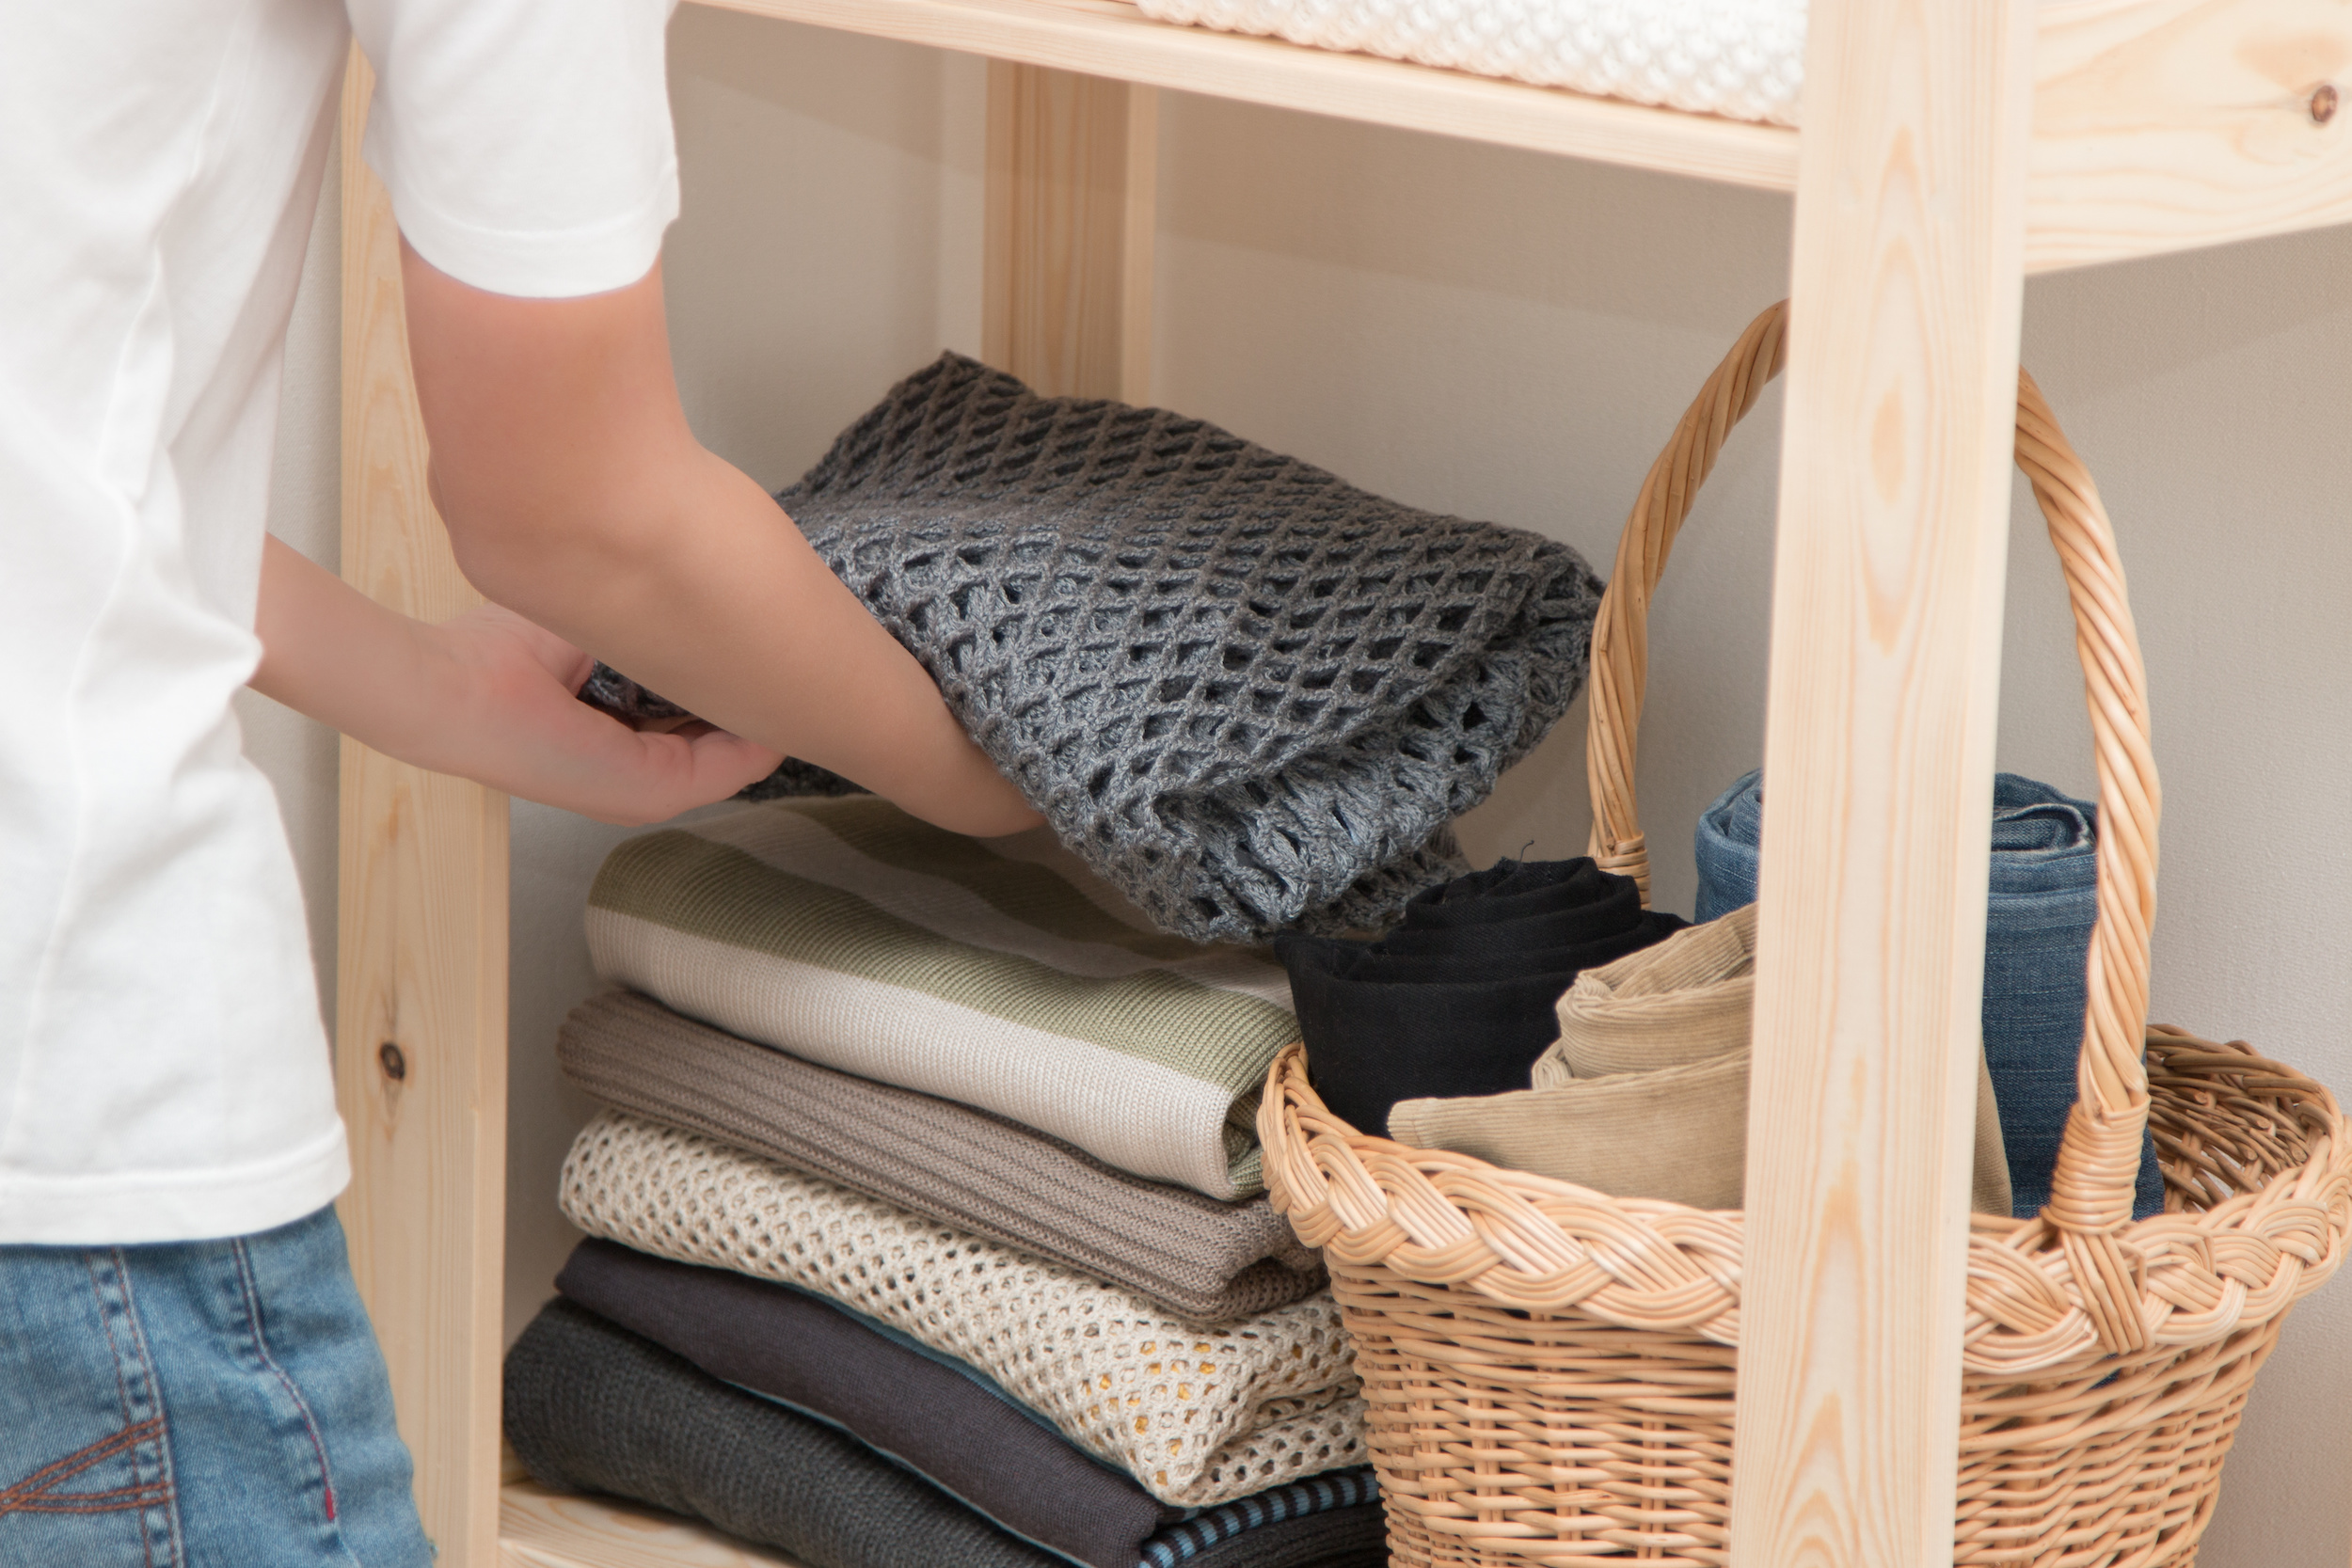 Ultra-Spring cleaning, the KonMari Way